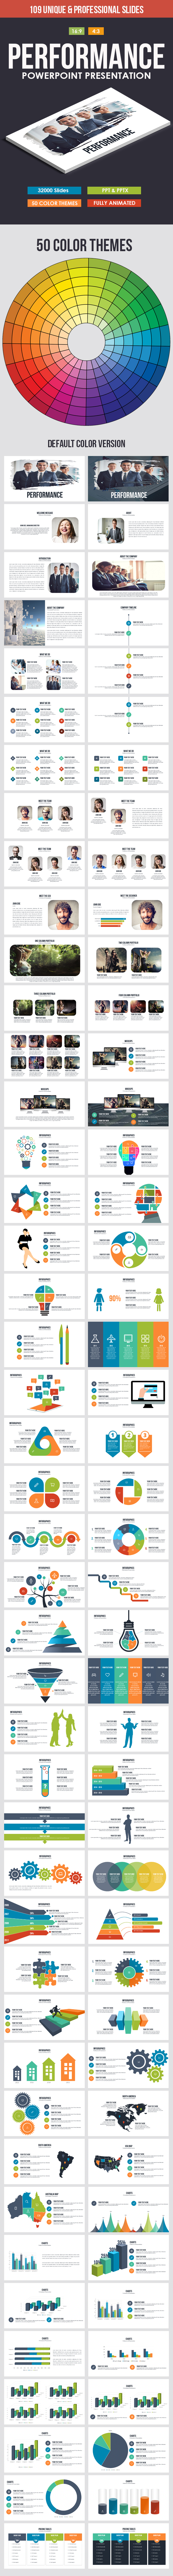 Performance Powerpoint Presentation Template - Business PowerPoint Templates